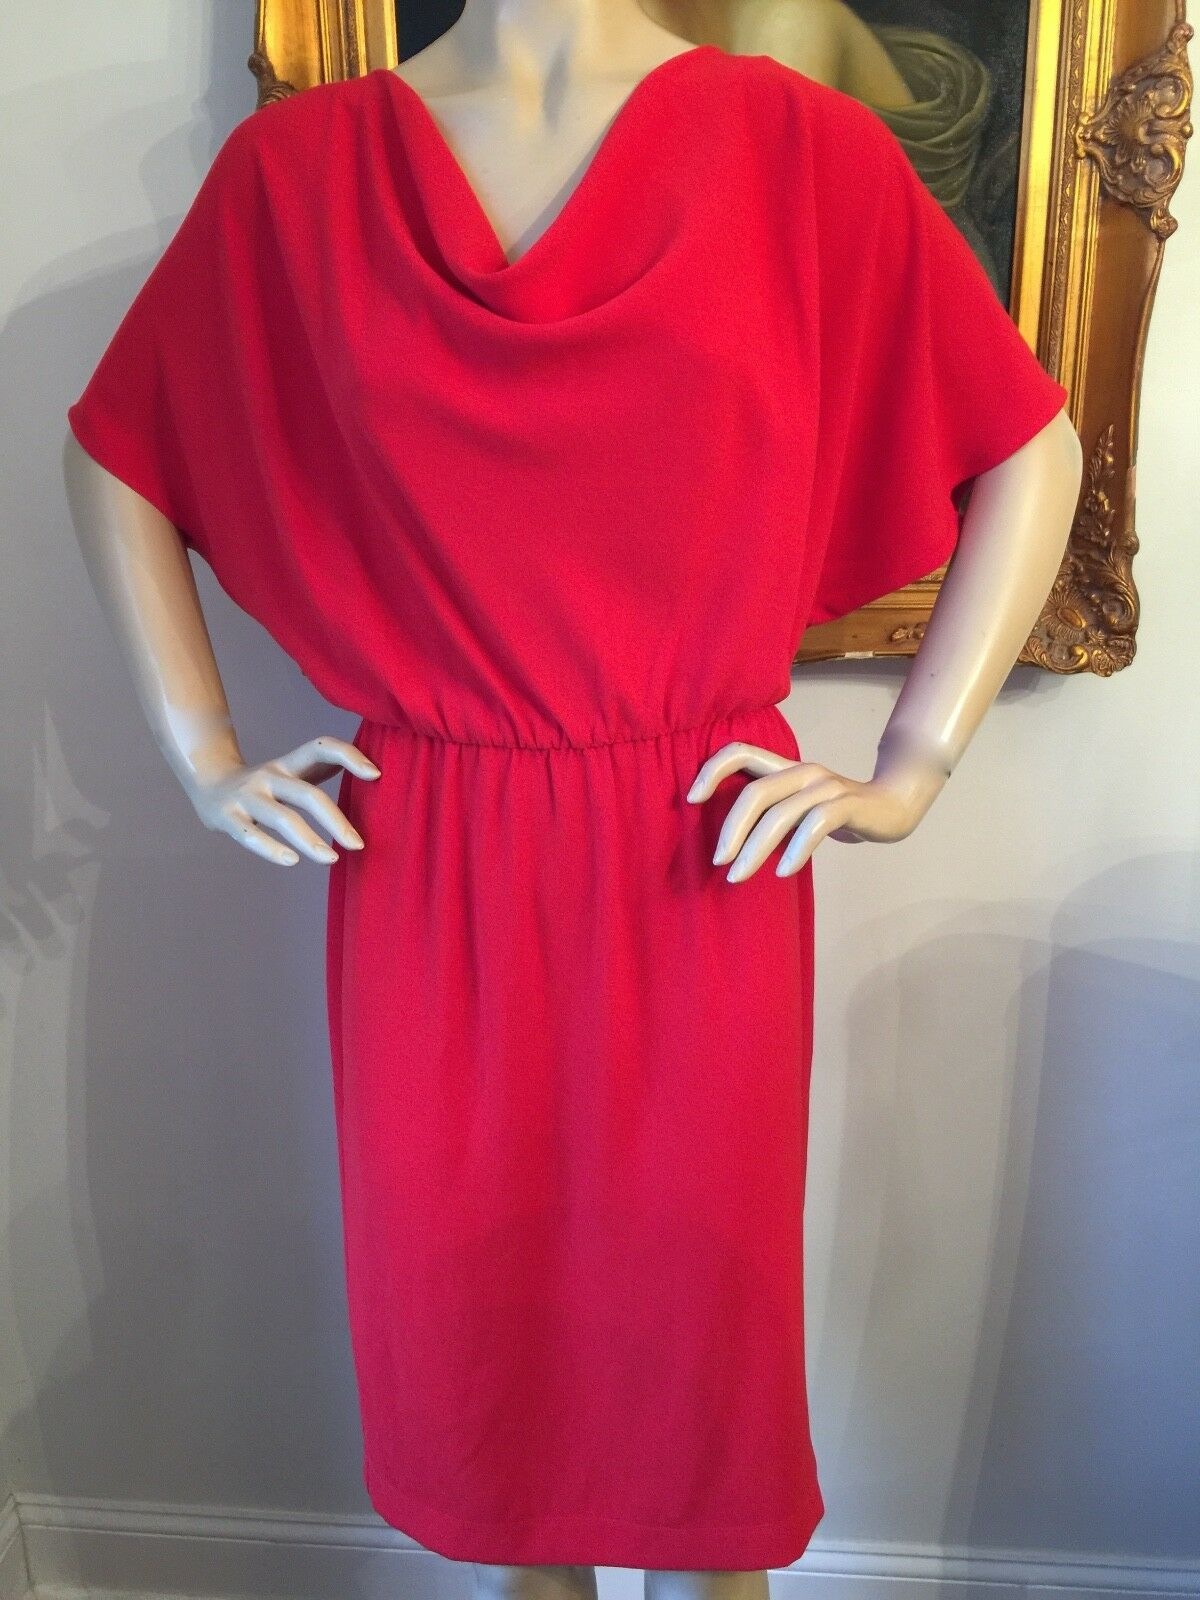 St John  Knit size 4 6 bright red polyester dress